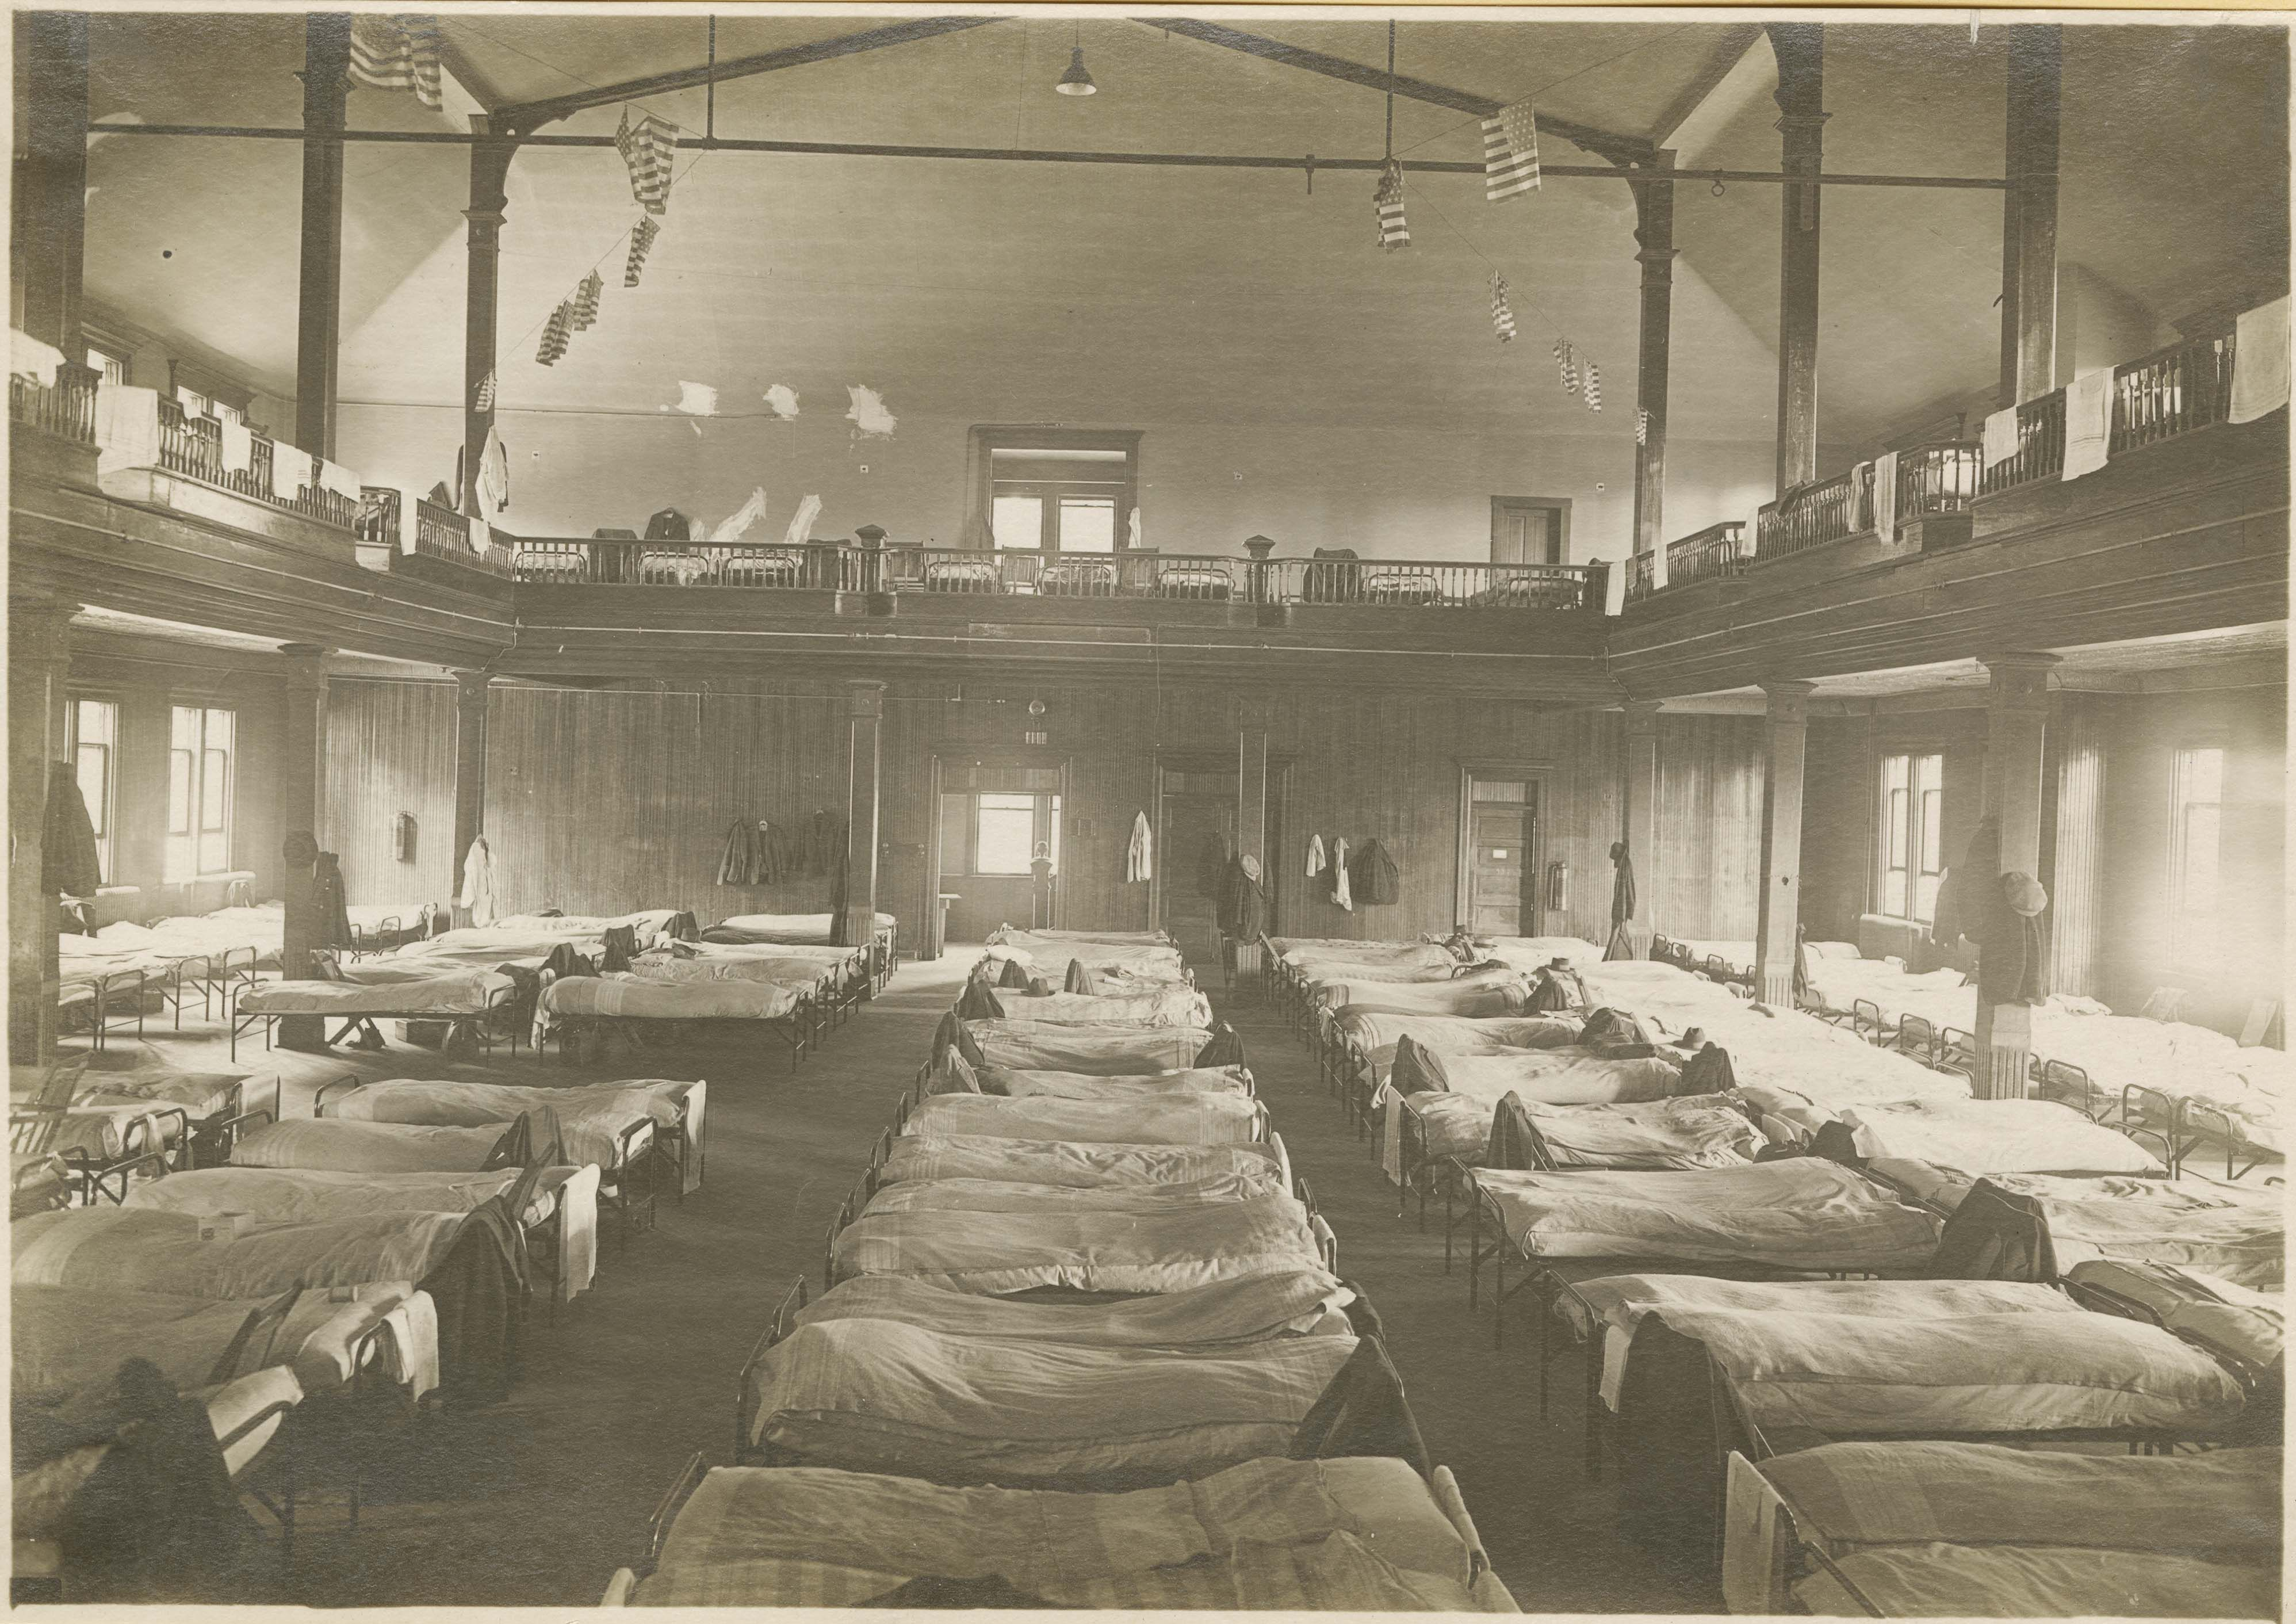 The Spanish influenza epidemic, uniquely lethal in attacking young, healthy bodies, killed at least 20 million people worldwide, including an estimated 50,000 Canadians. The flu was spread through bodily fluids and moved quickly through the population. The flu presented itself through fatigue and cough, but quickly attacked the body, creating mucous build-up in the lungs that could not be expelled. Victims of the flu could be dead within a day of contracting the illness.